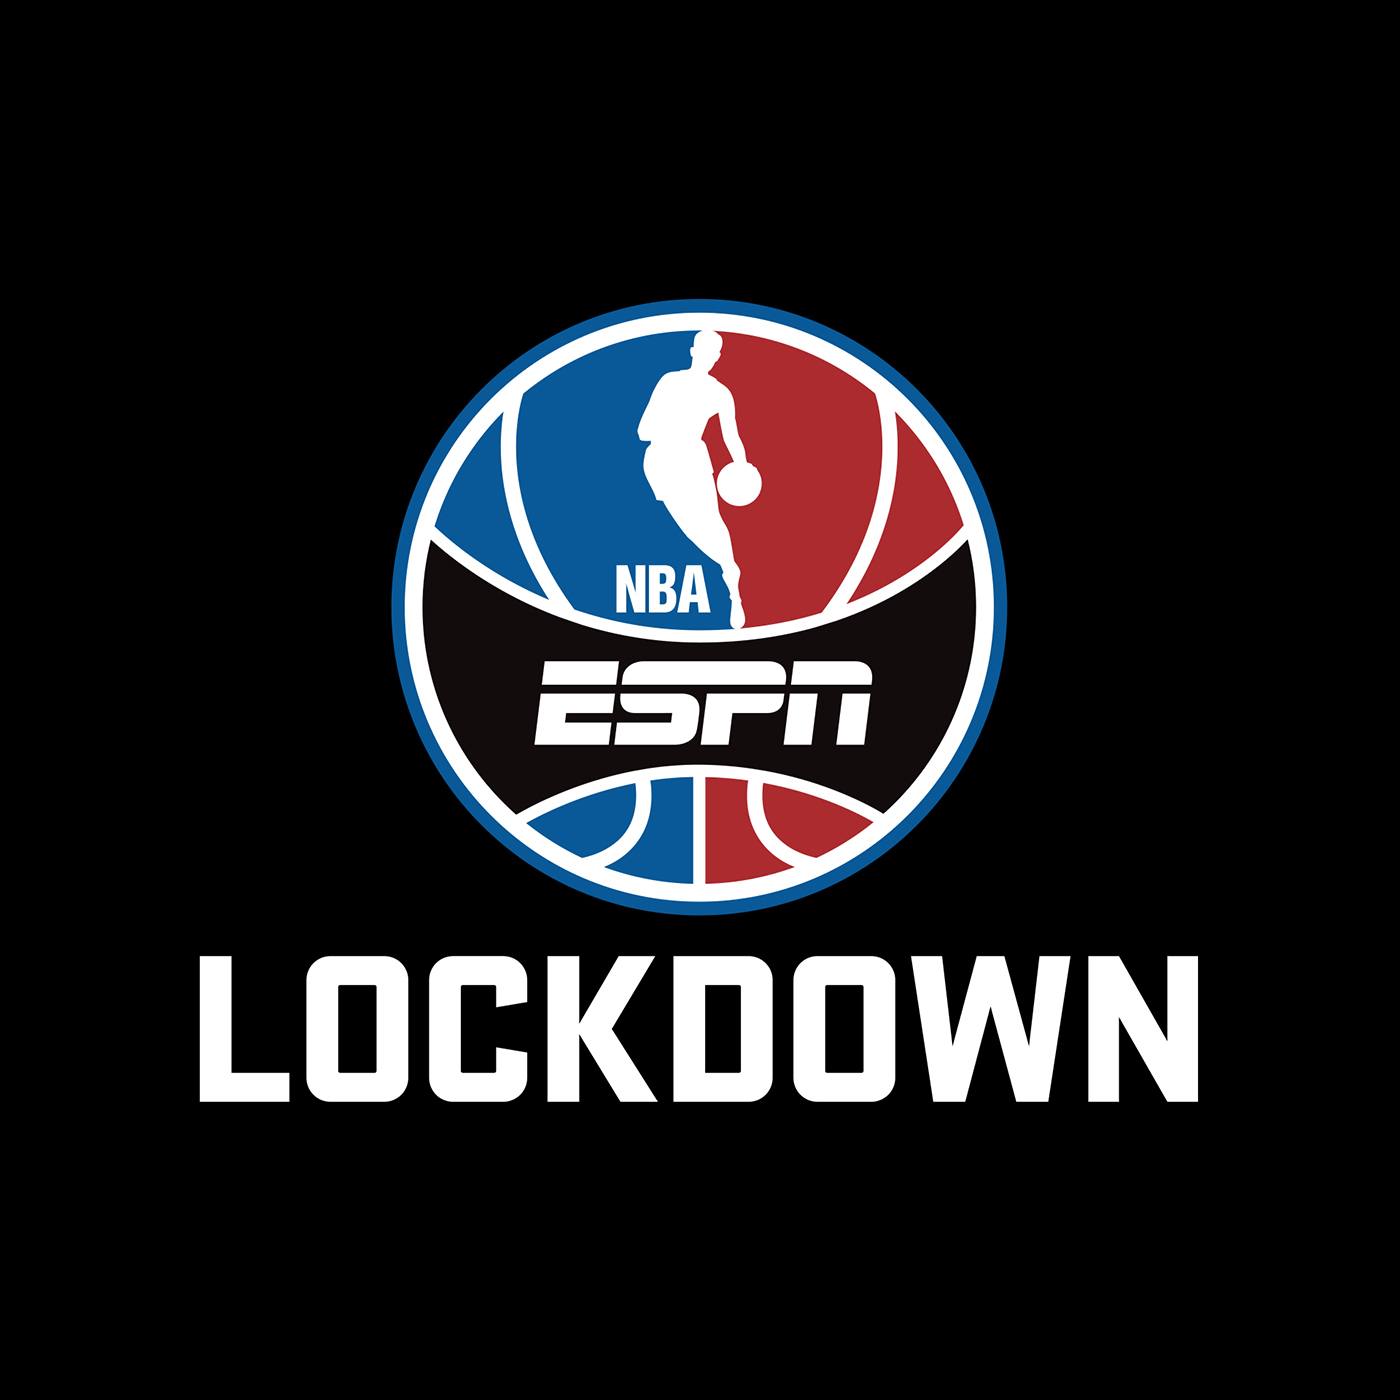 NBA Lockdown (podcast)